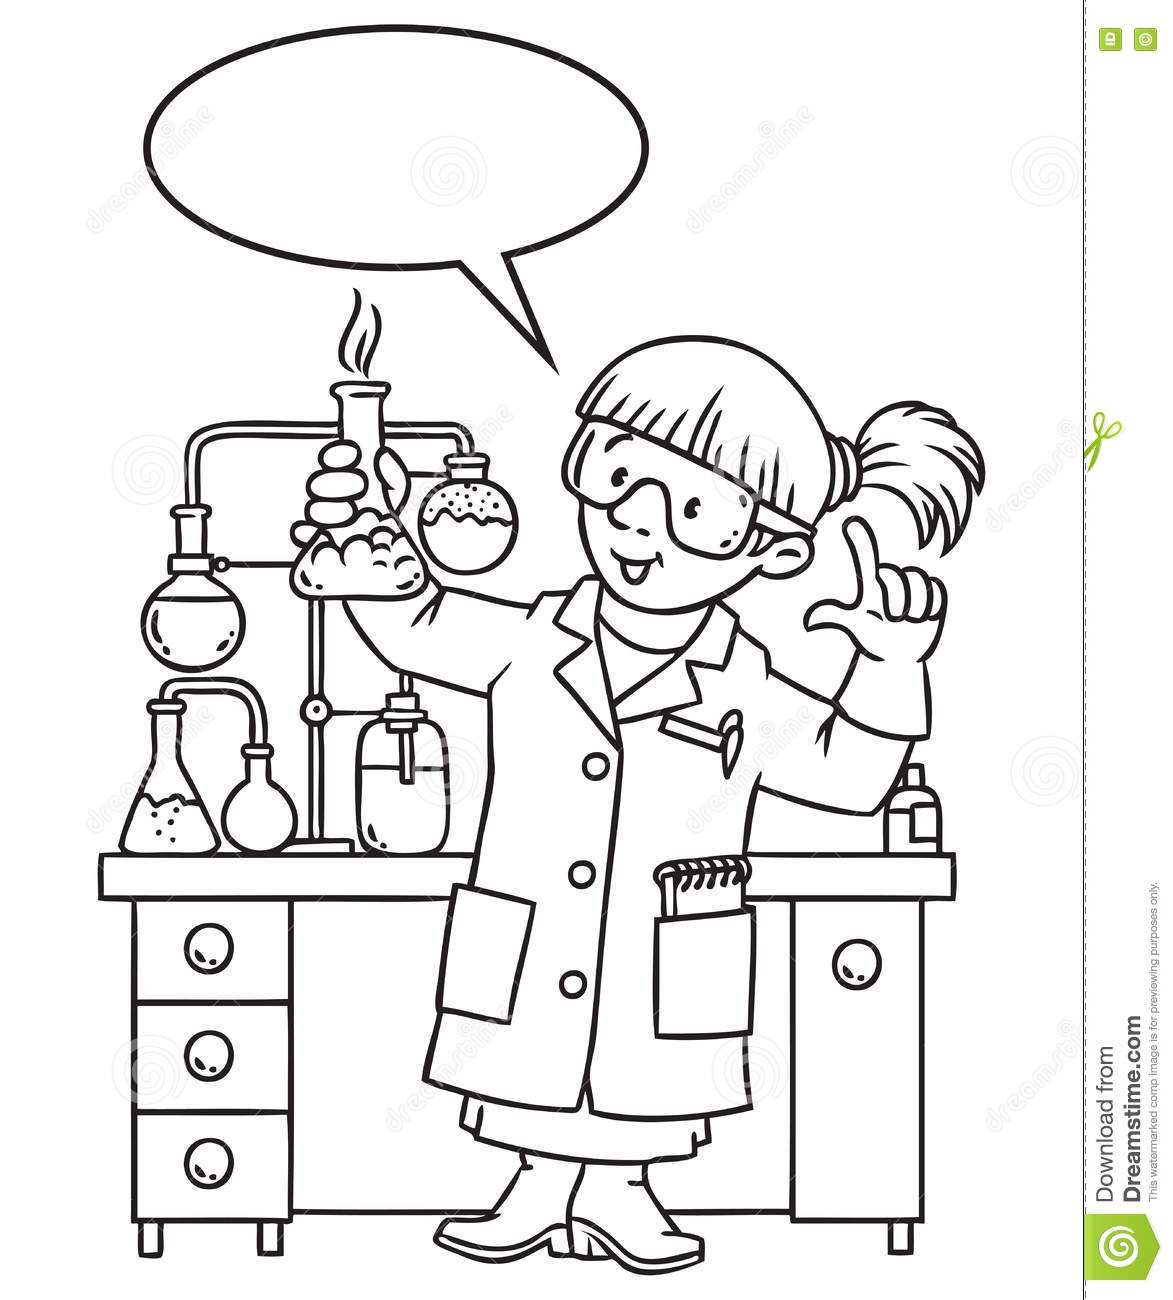 Coloring Book Of Funny Chemist Or Scientist Stock Vector ...